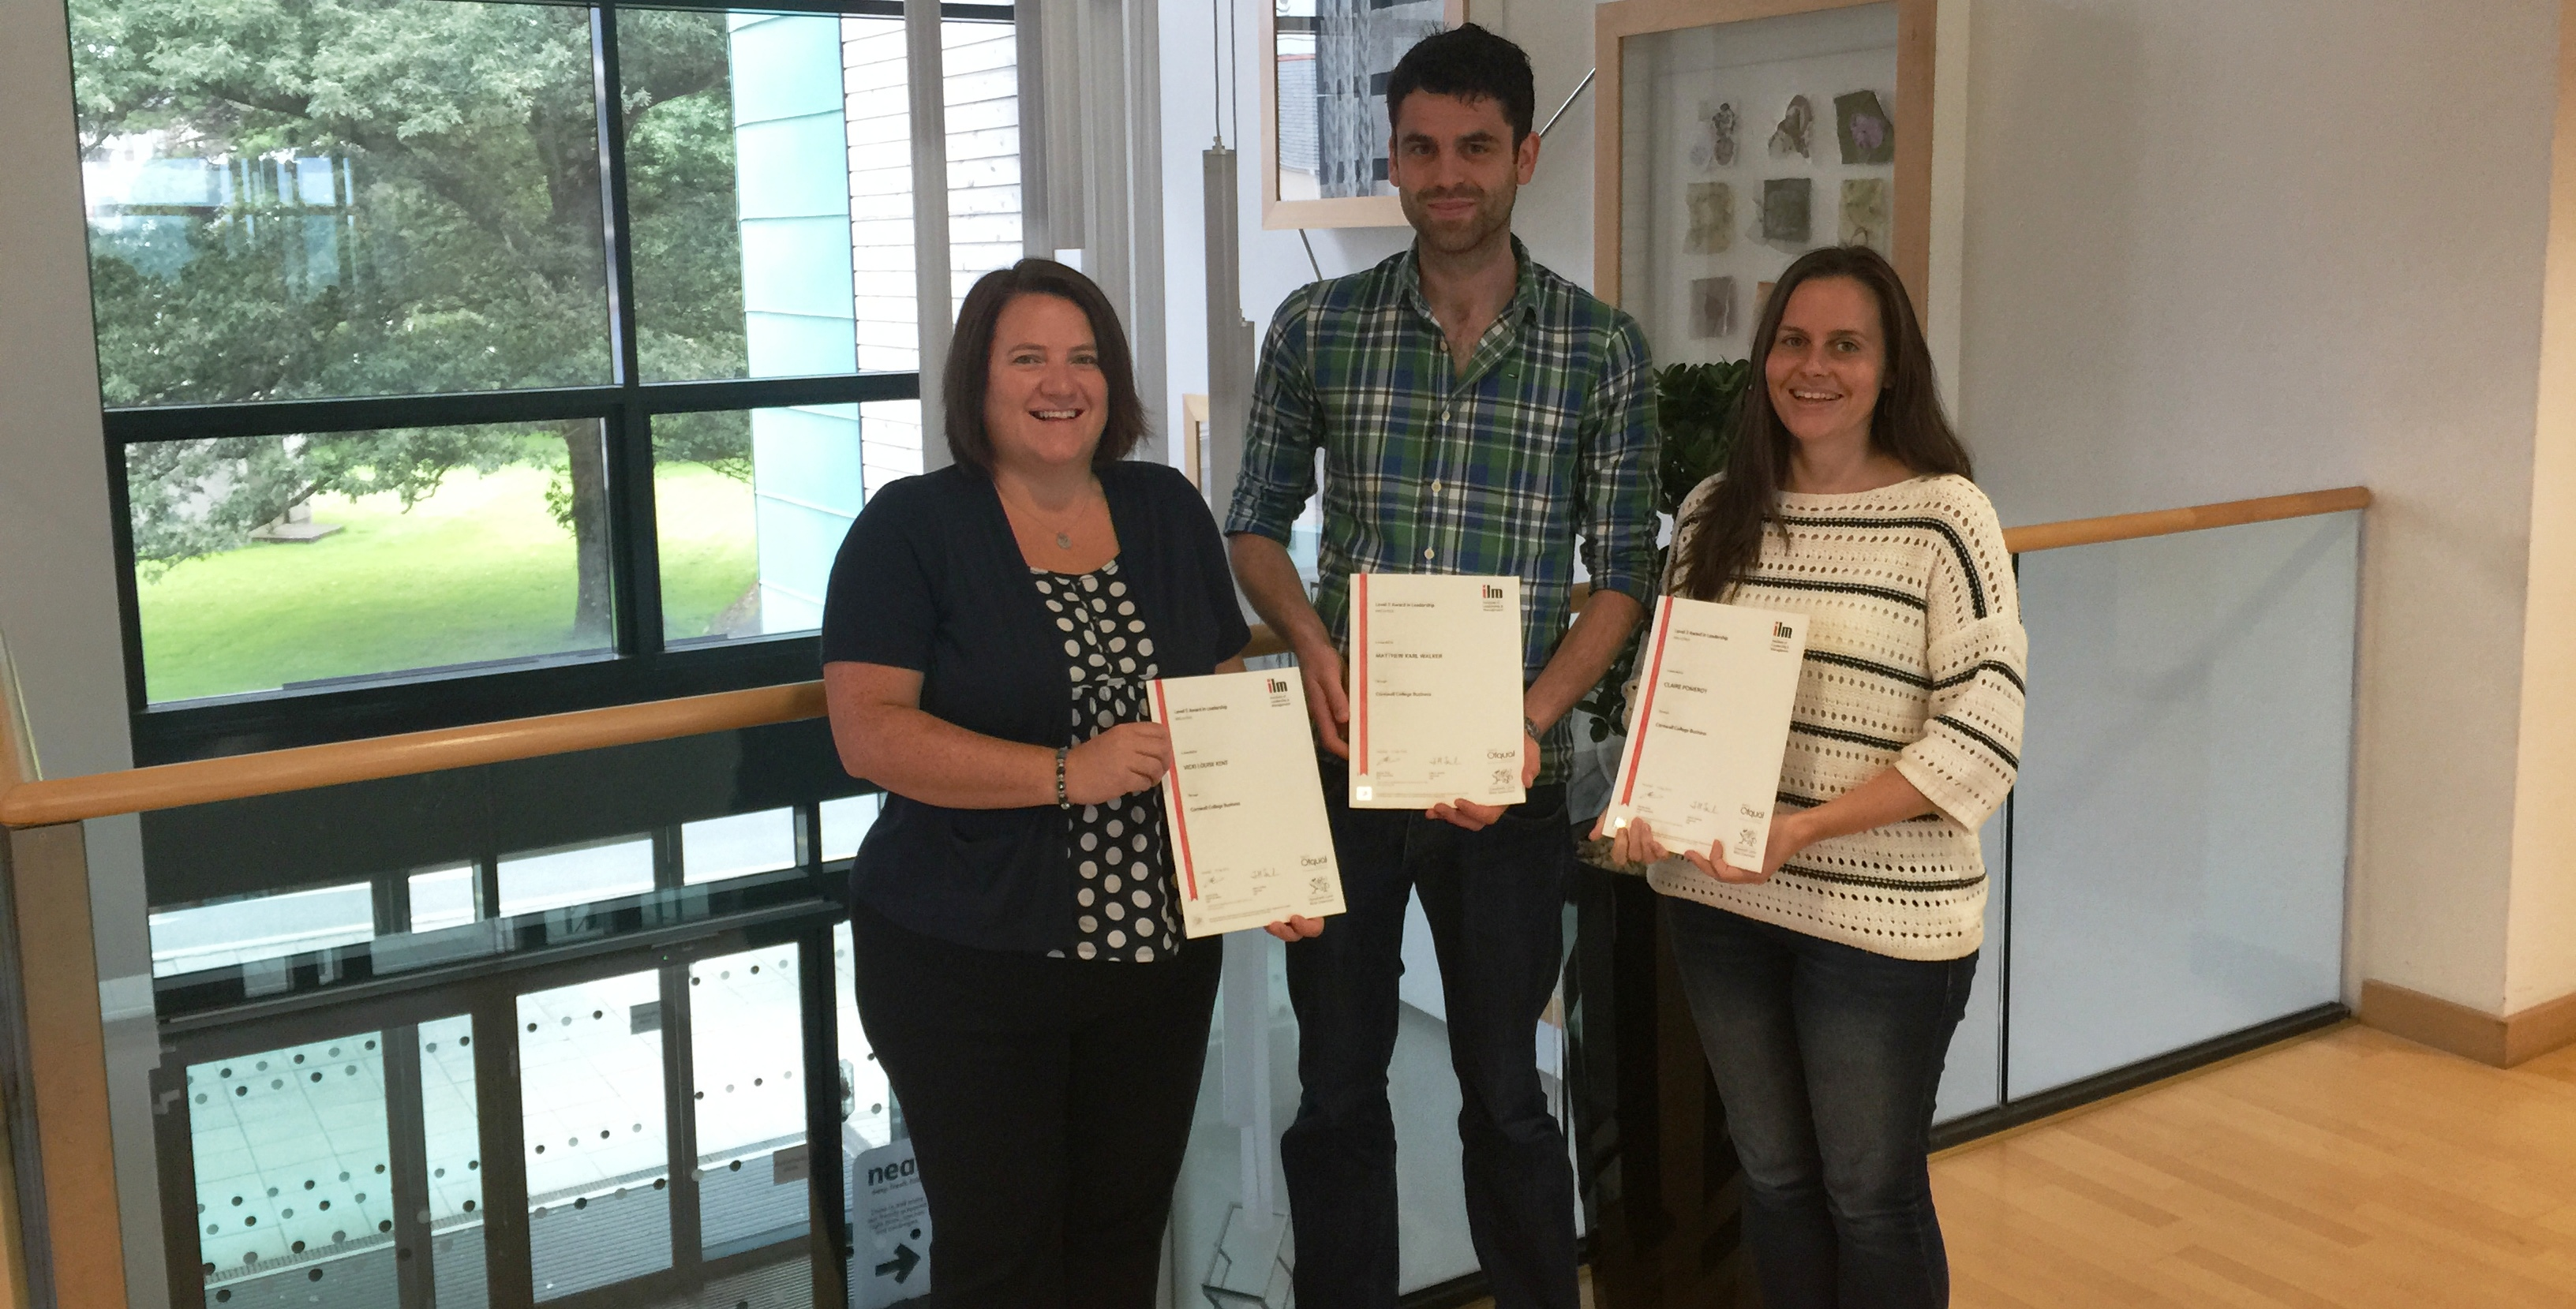 l-r: Vicki Kent (operations manager), Matthew Walker, Claire Pomeroy (regulatory affairs managers)